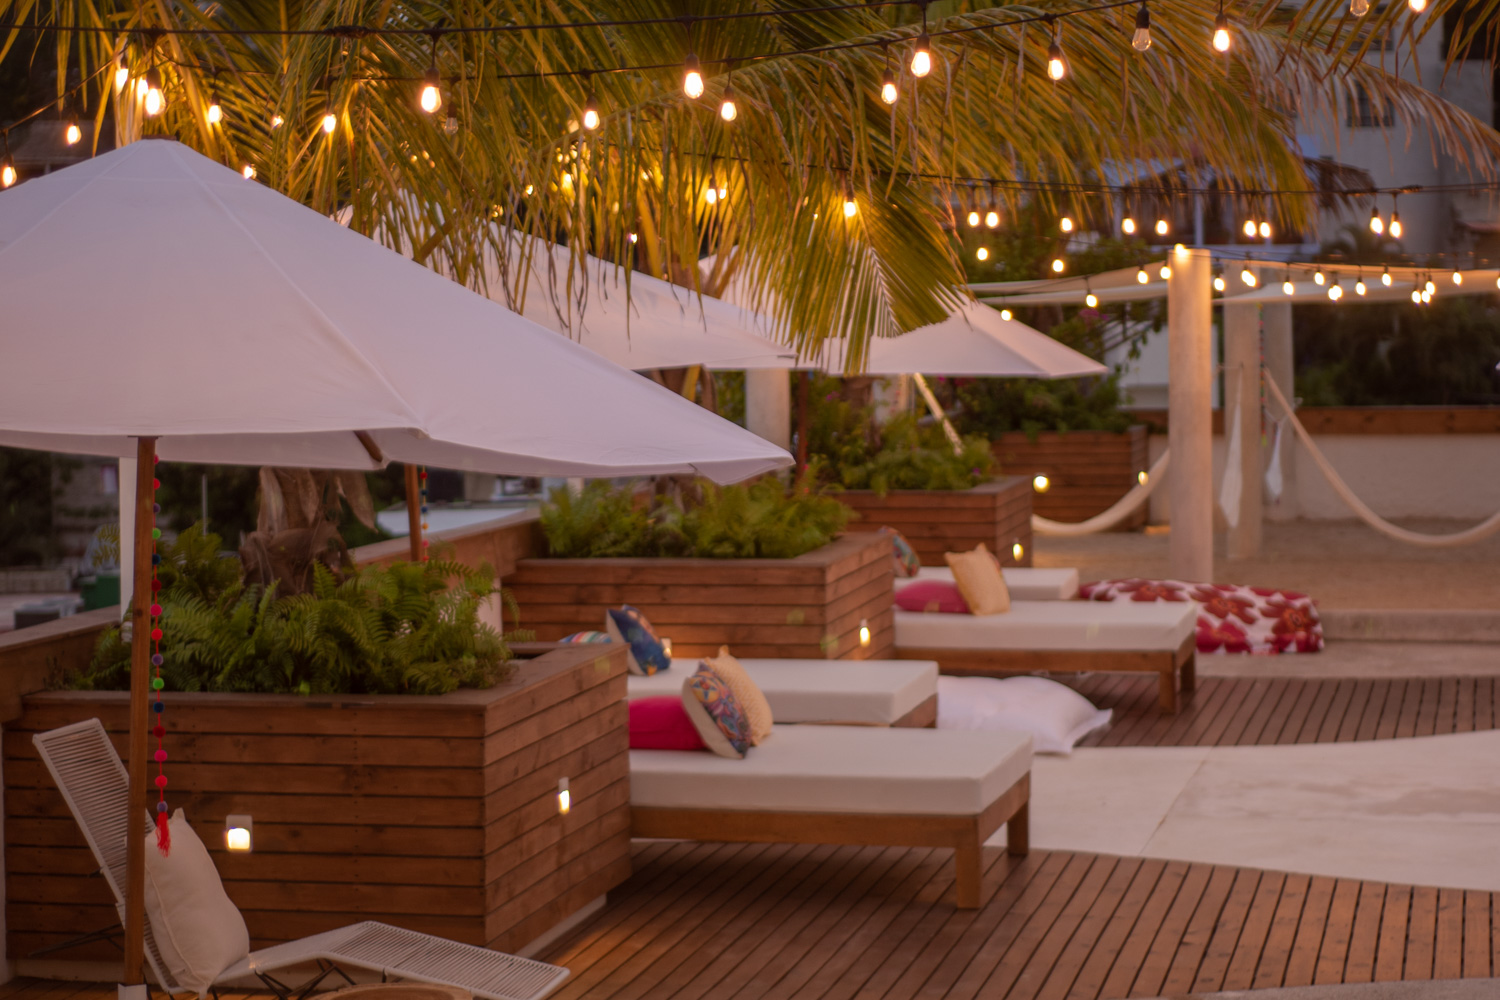 OUR TERRACE AND HAMMOCK SPOT ARE WAITING